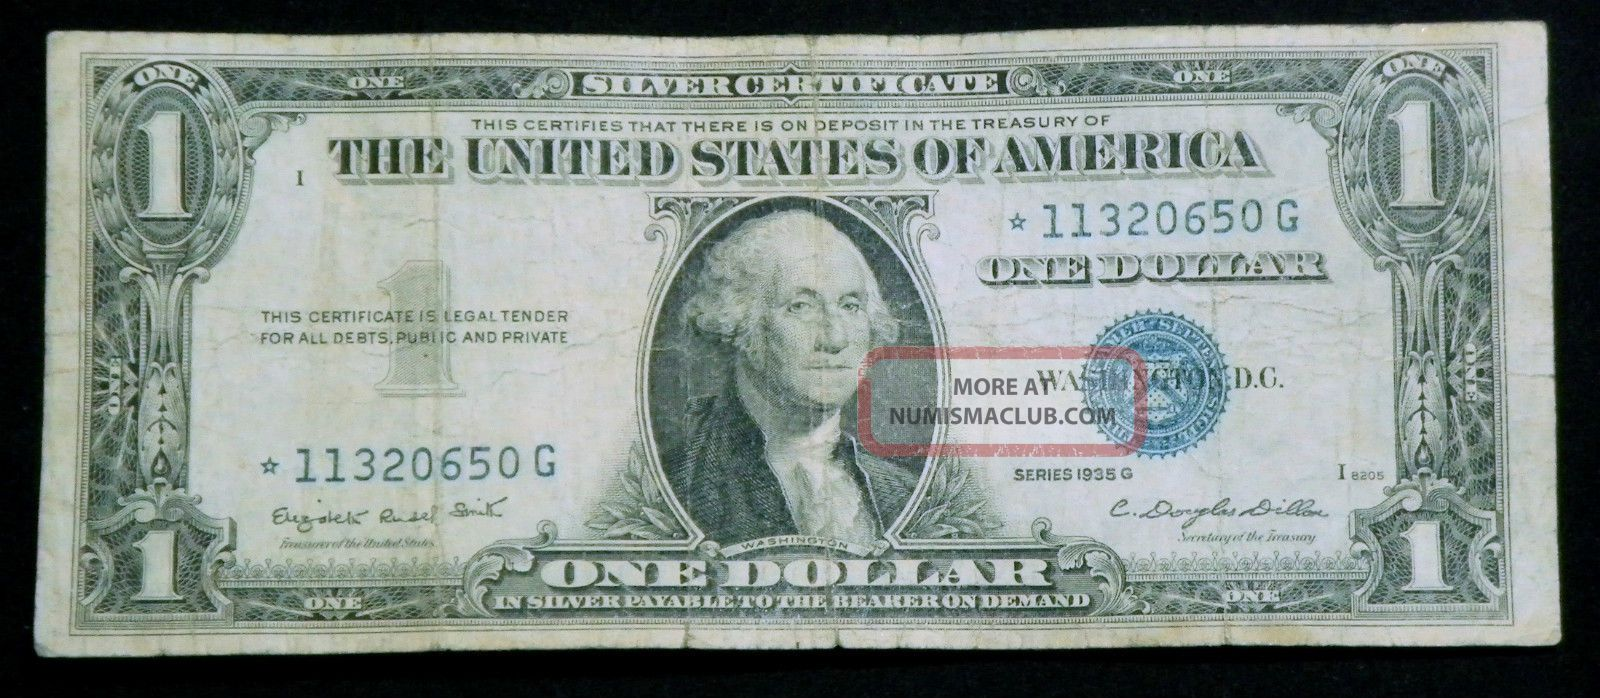 1935g Star 1 One Dollar Silver Certificate Blue Seal With Out Motto 2